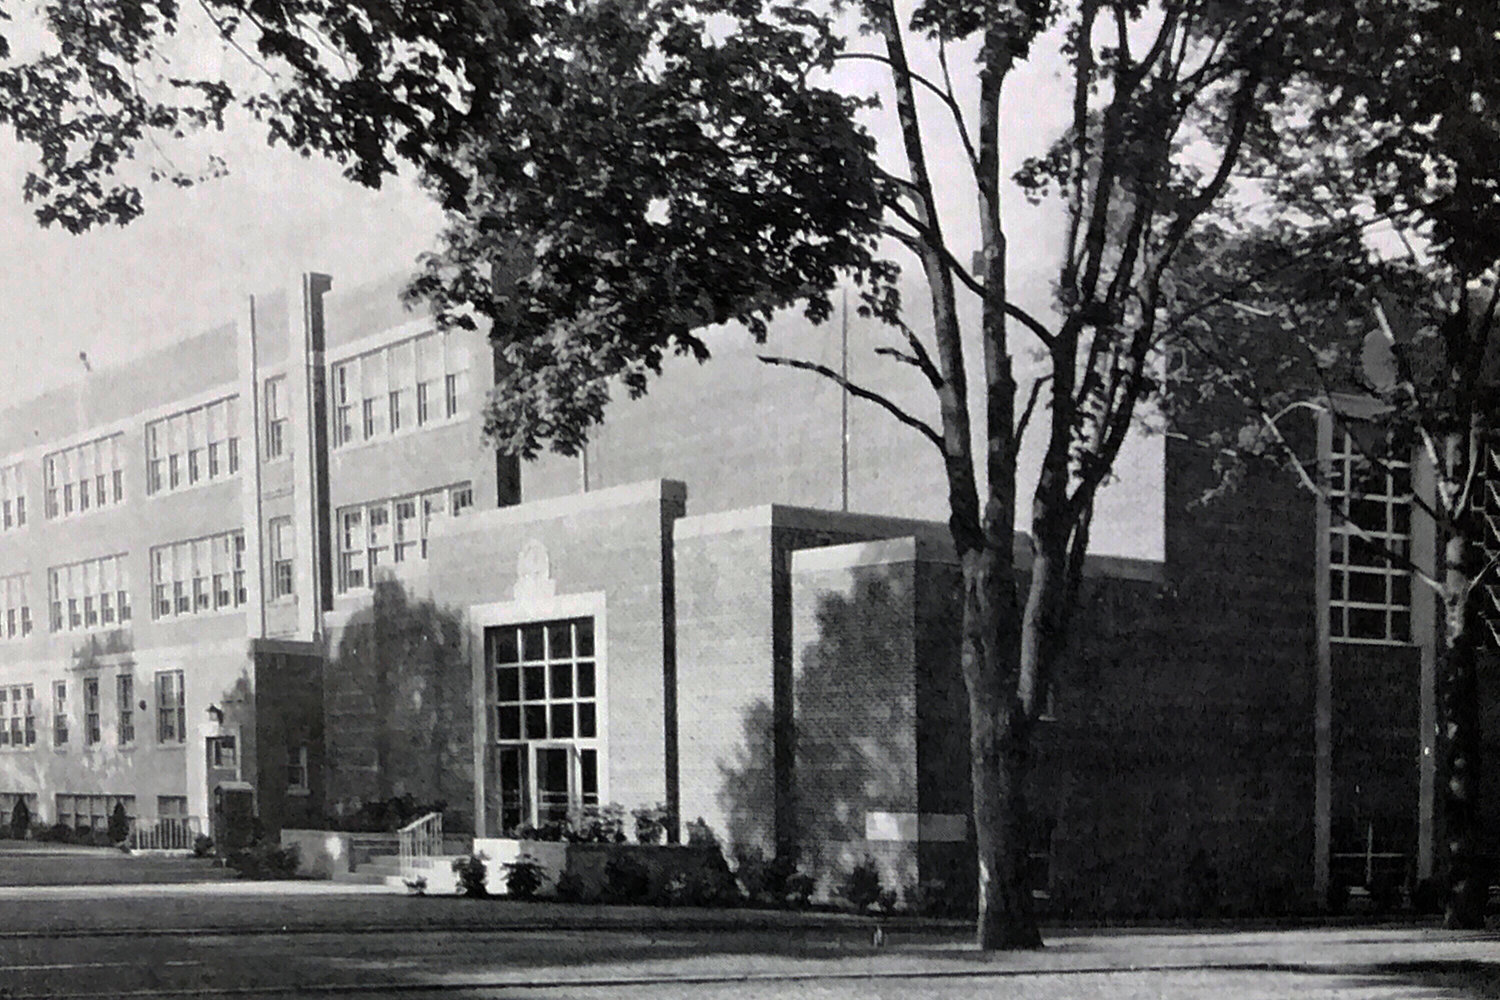 Sacred Heart's campus in the 1950s.